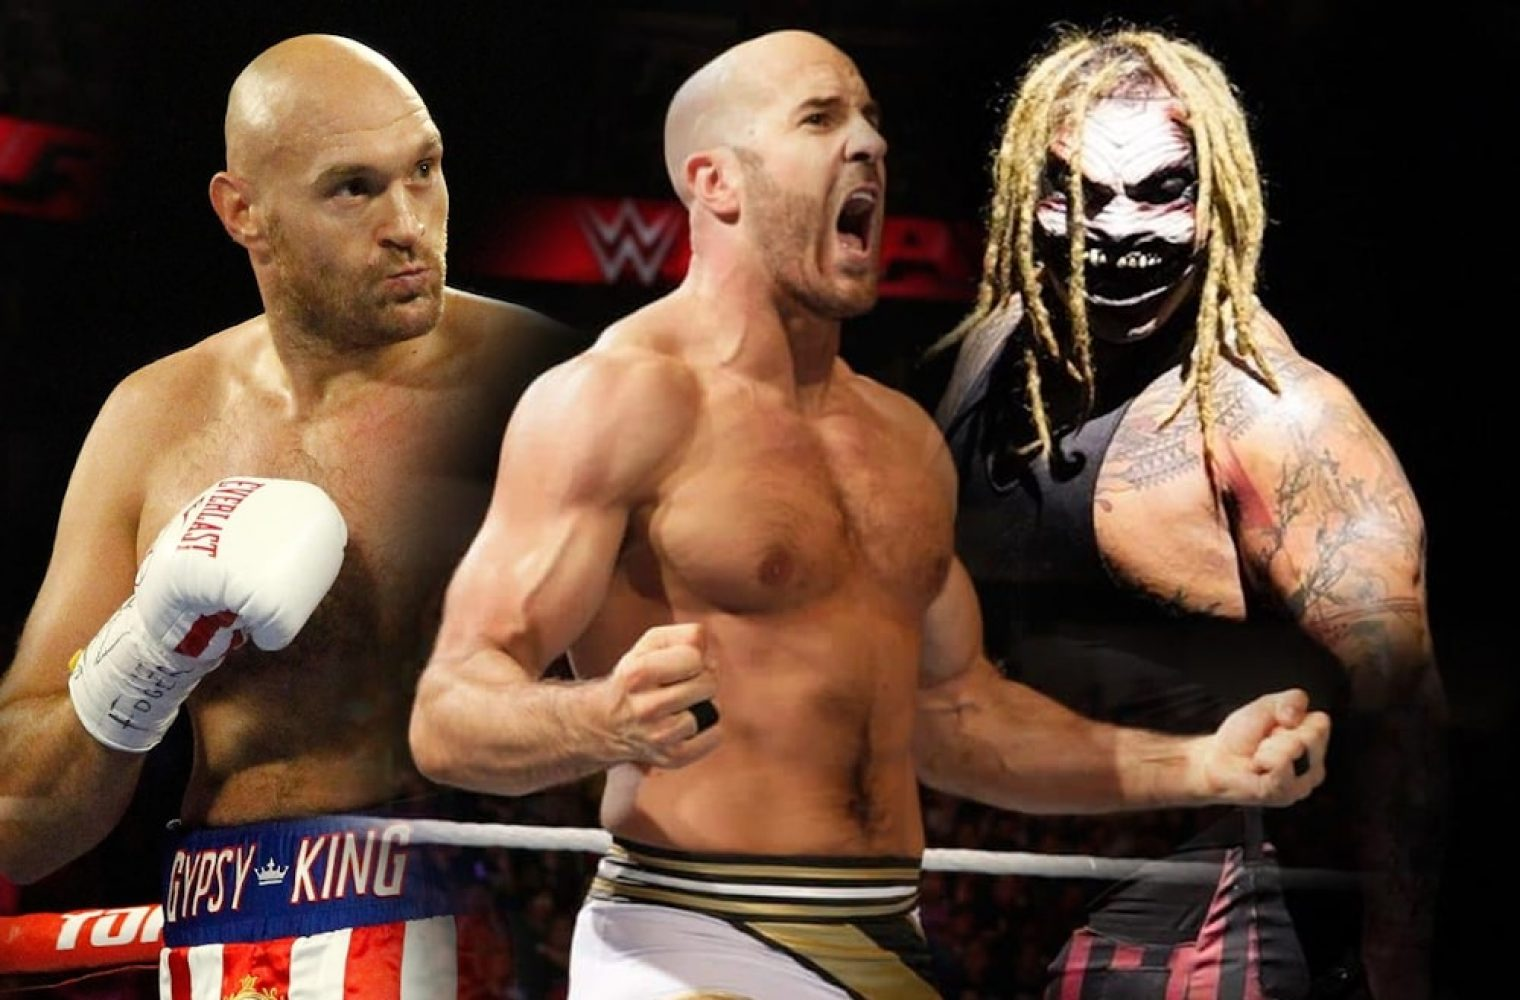 Cesaro Punched By Tyson Fury Then Attacked By The Fiend After Raw Goes Off Air (w/Videos)